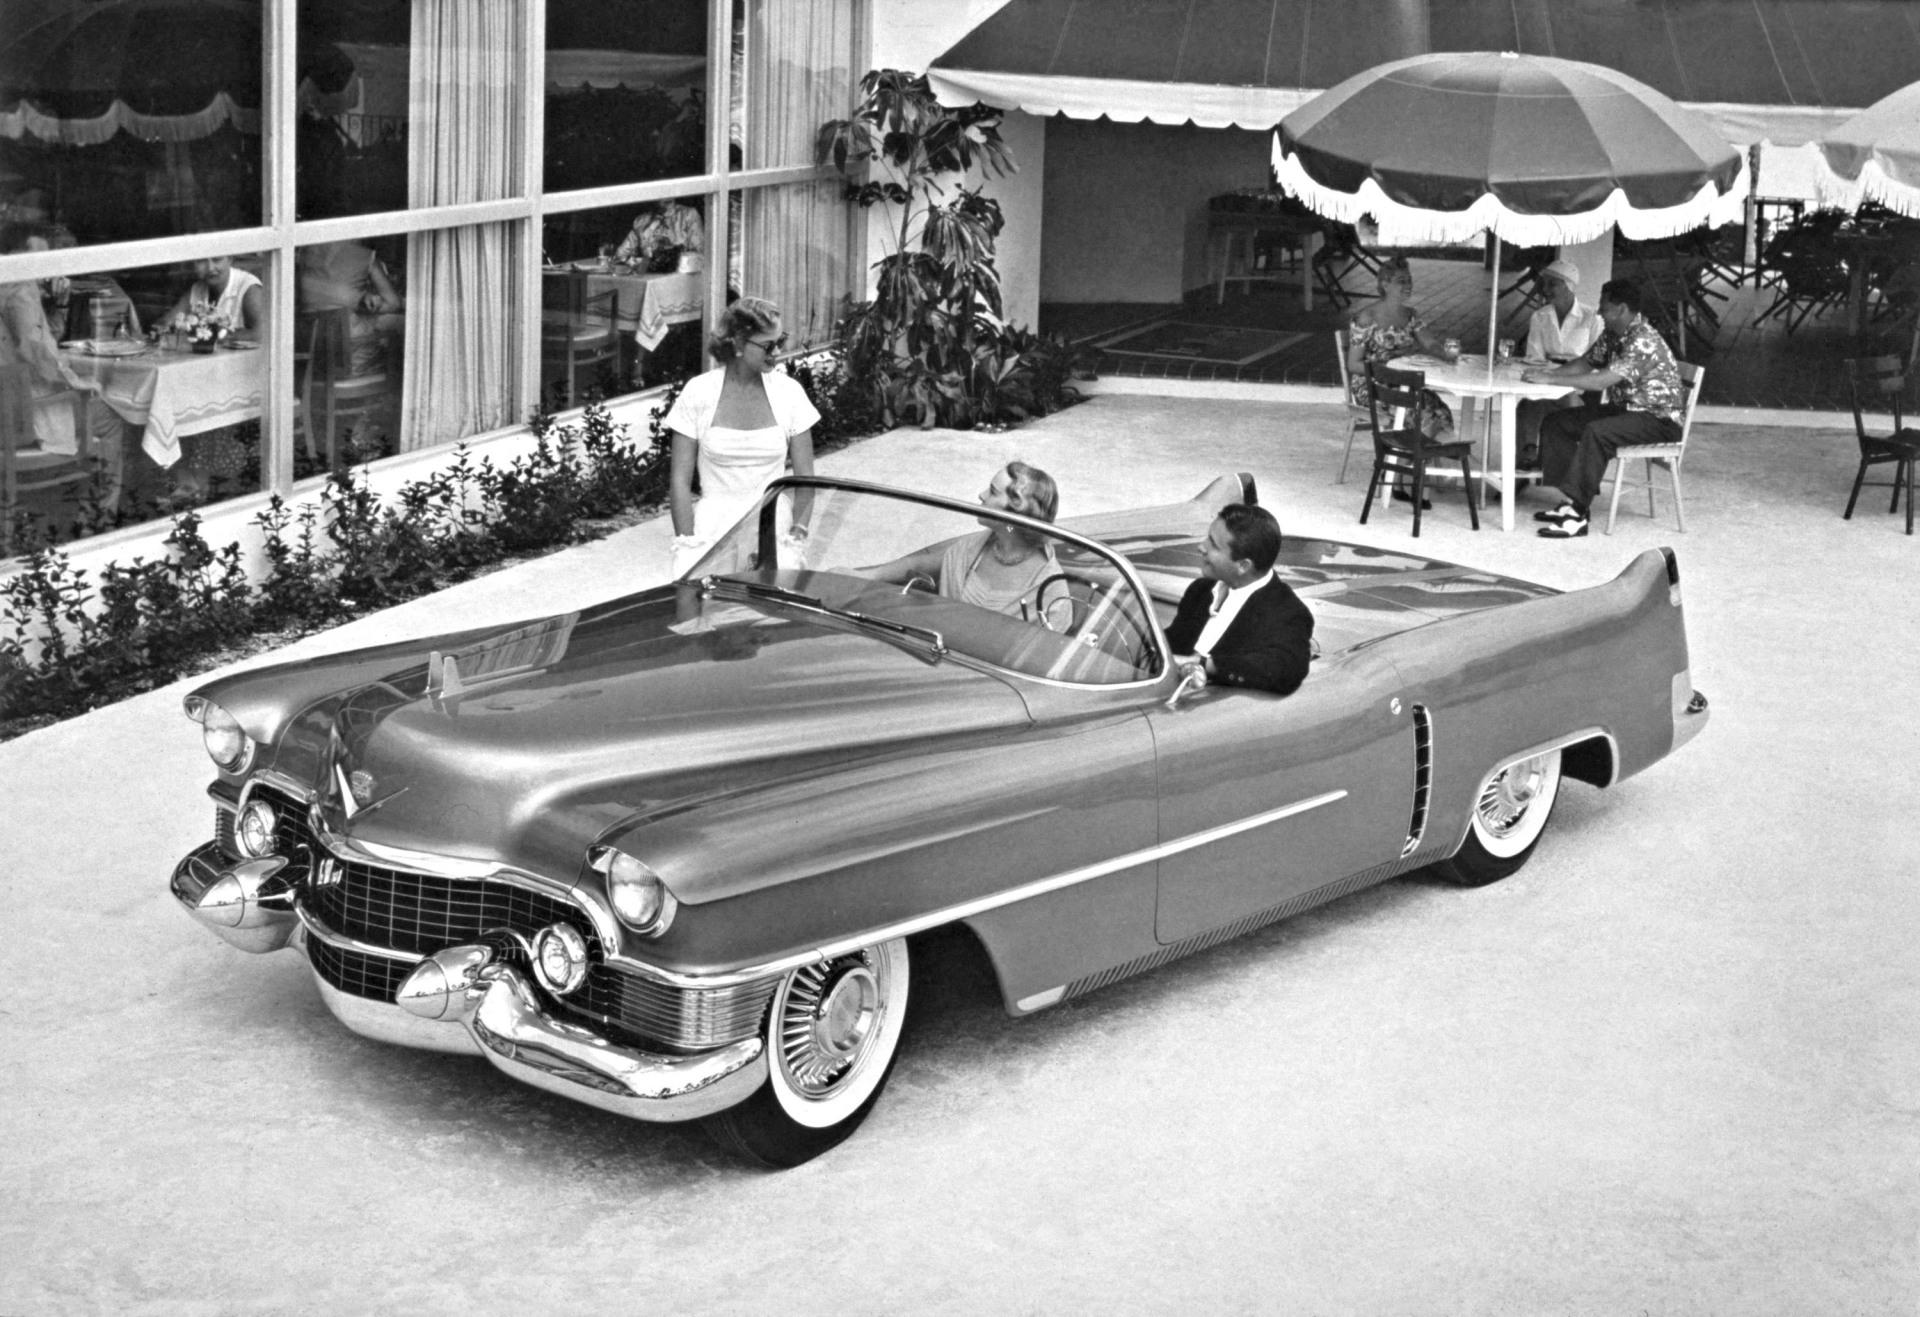 1953 cadillac le mans concept image photo 46 of 73 for Dream motors los angeles